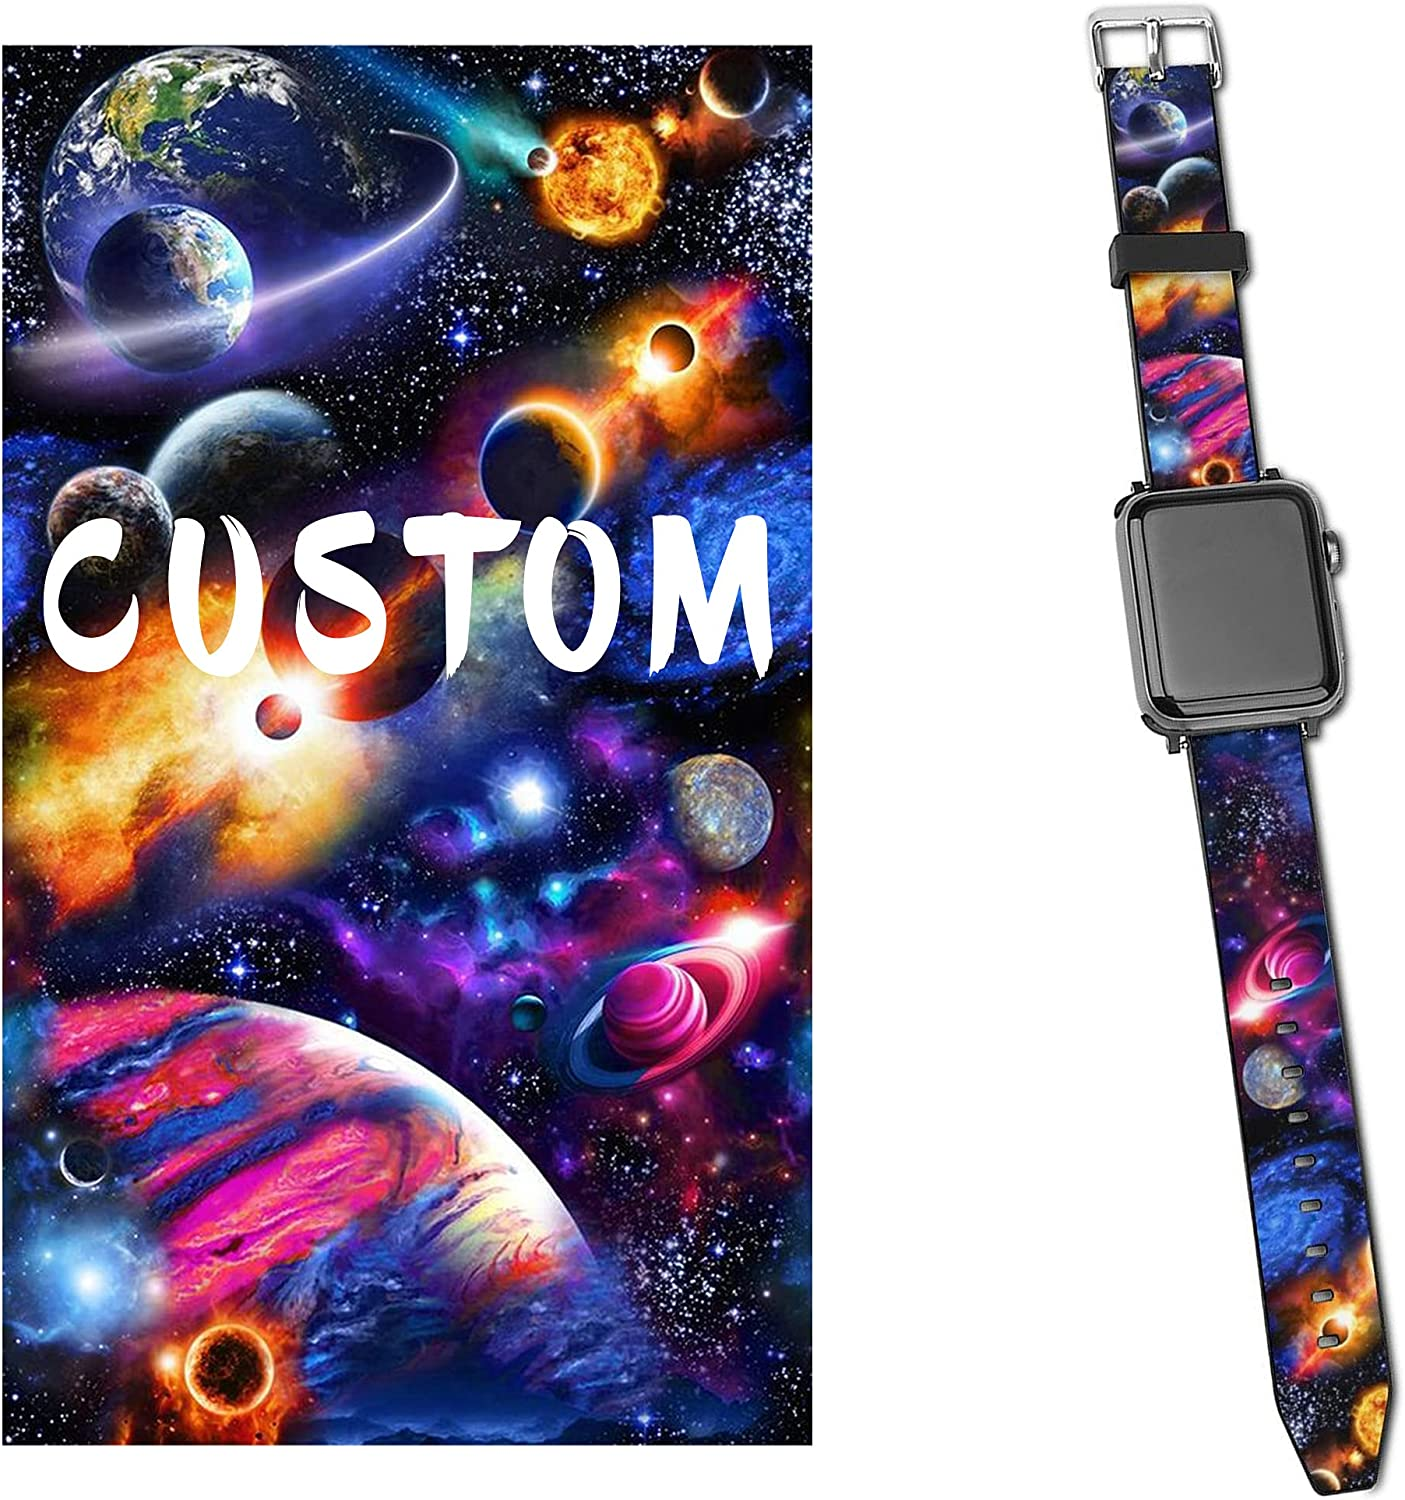 CUSTOM Band Compatible with Apple Watch Series SE 6 5 4 3 44mm 40mm 42mm 38mm Your Photo Text iWatch Personalized Bands Replacement Strap Leather Bands For Men Women Kid